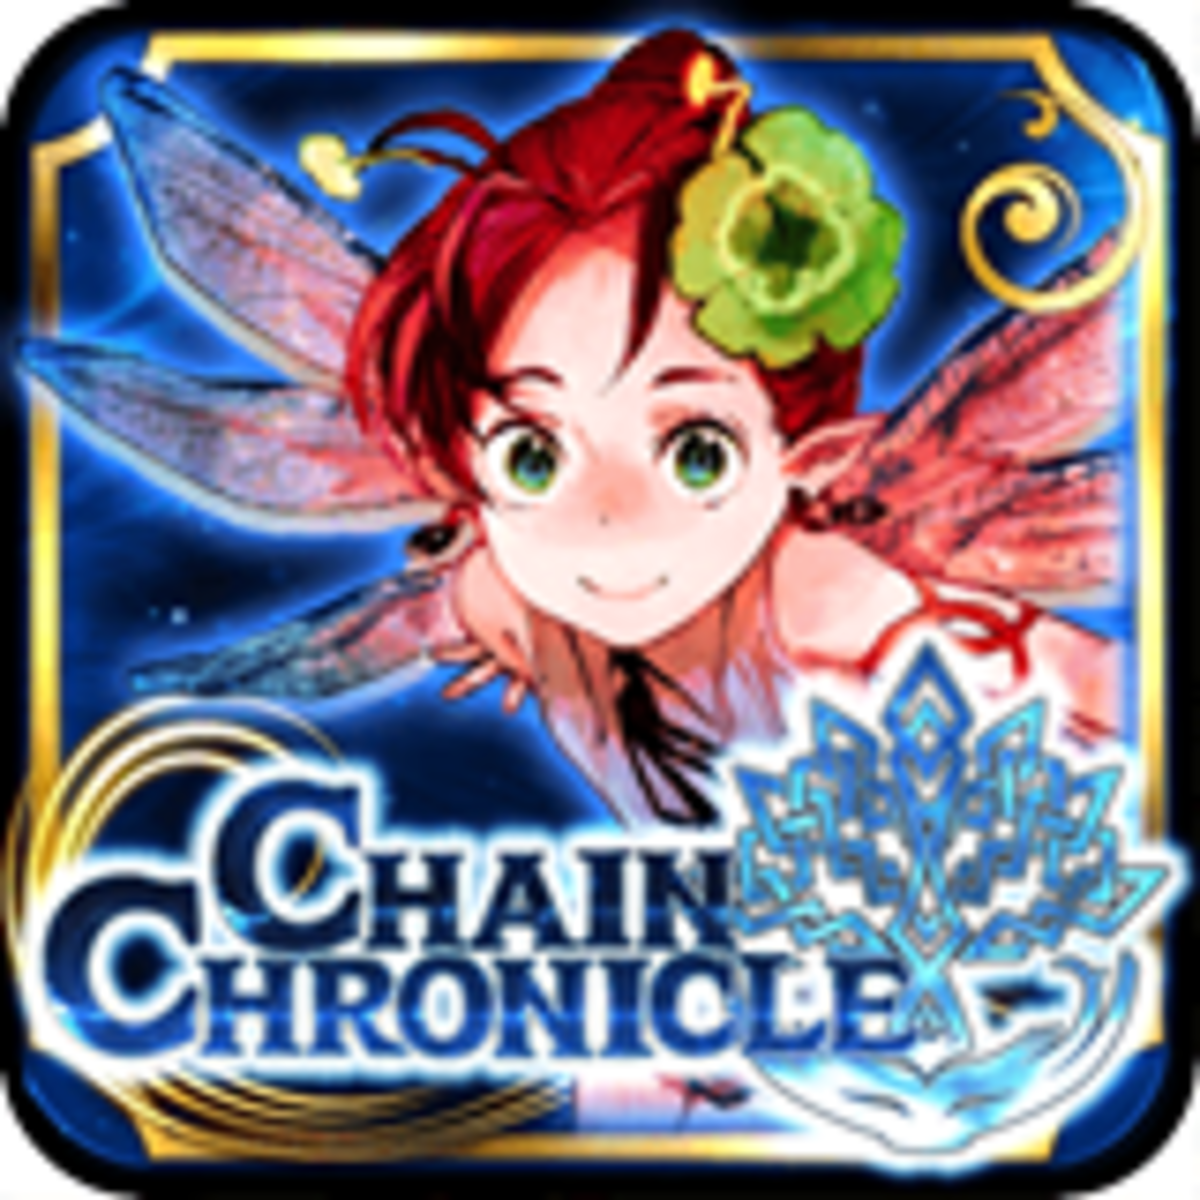 10 Advanced Hints and Tips for Chain Chronicle